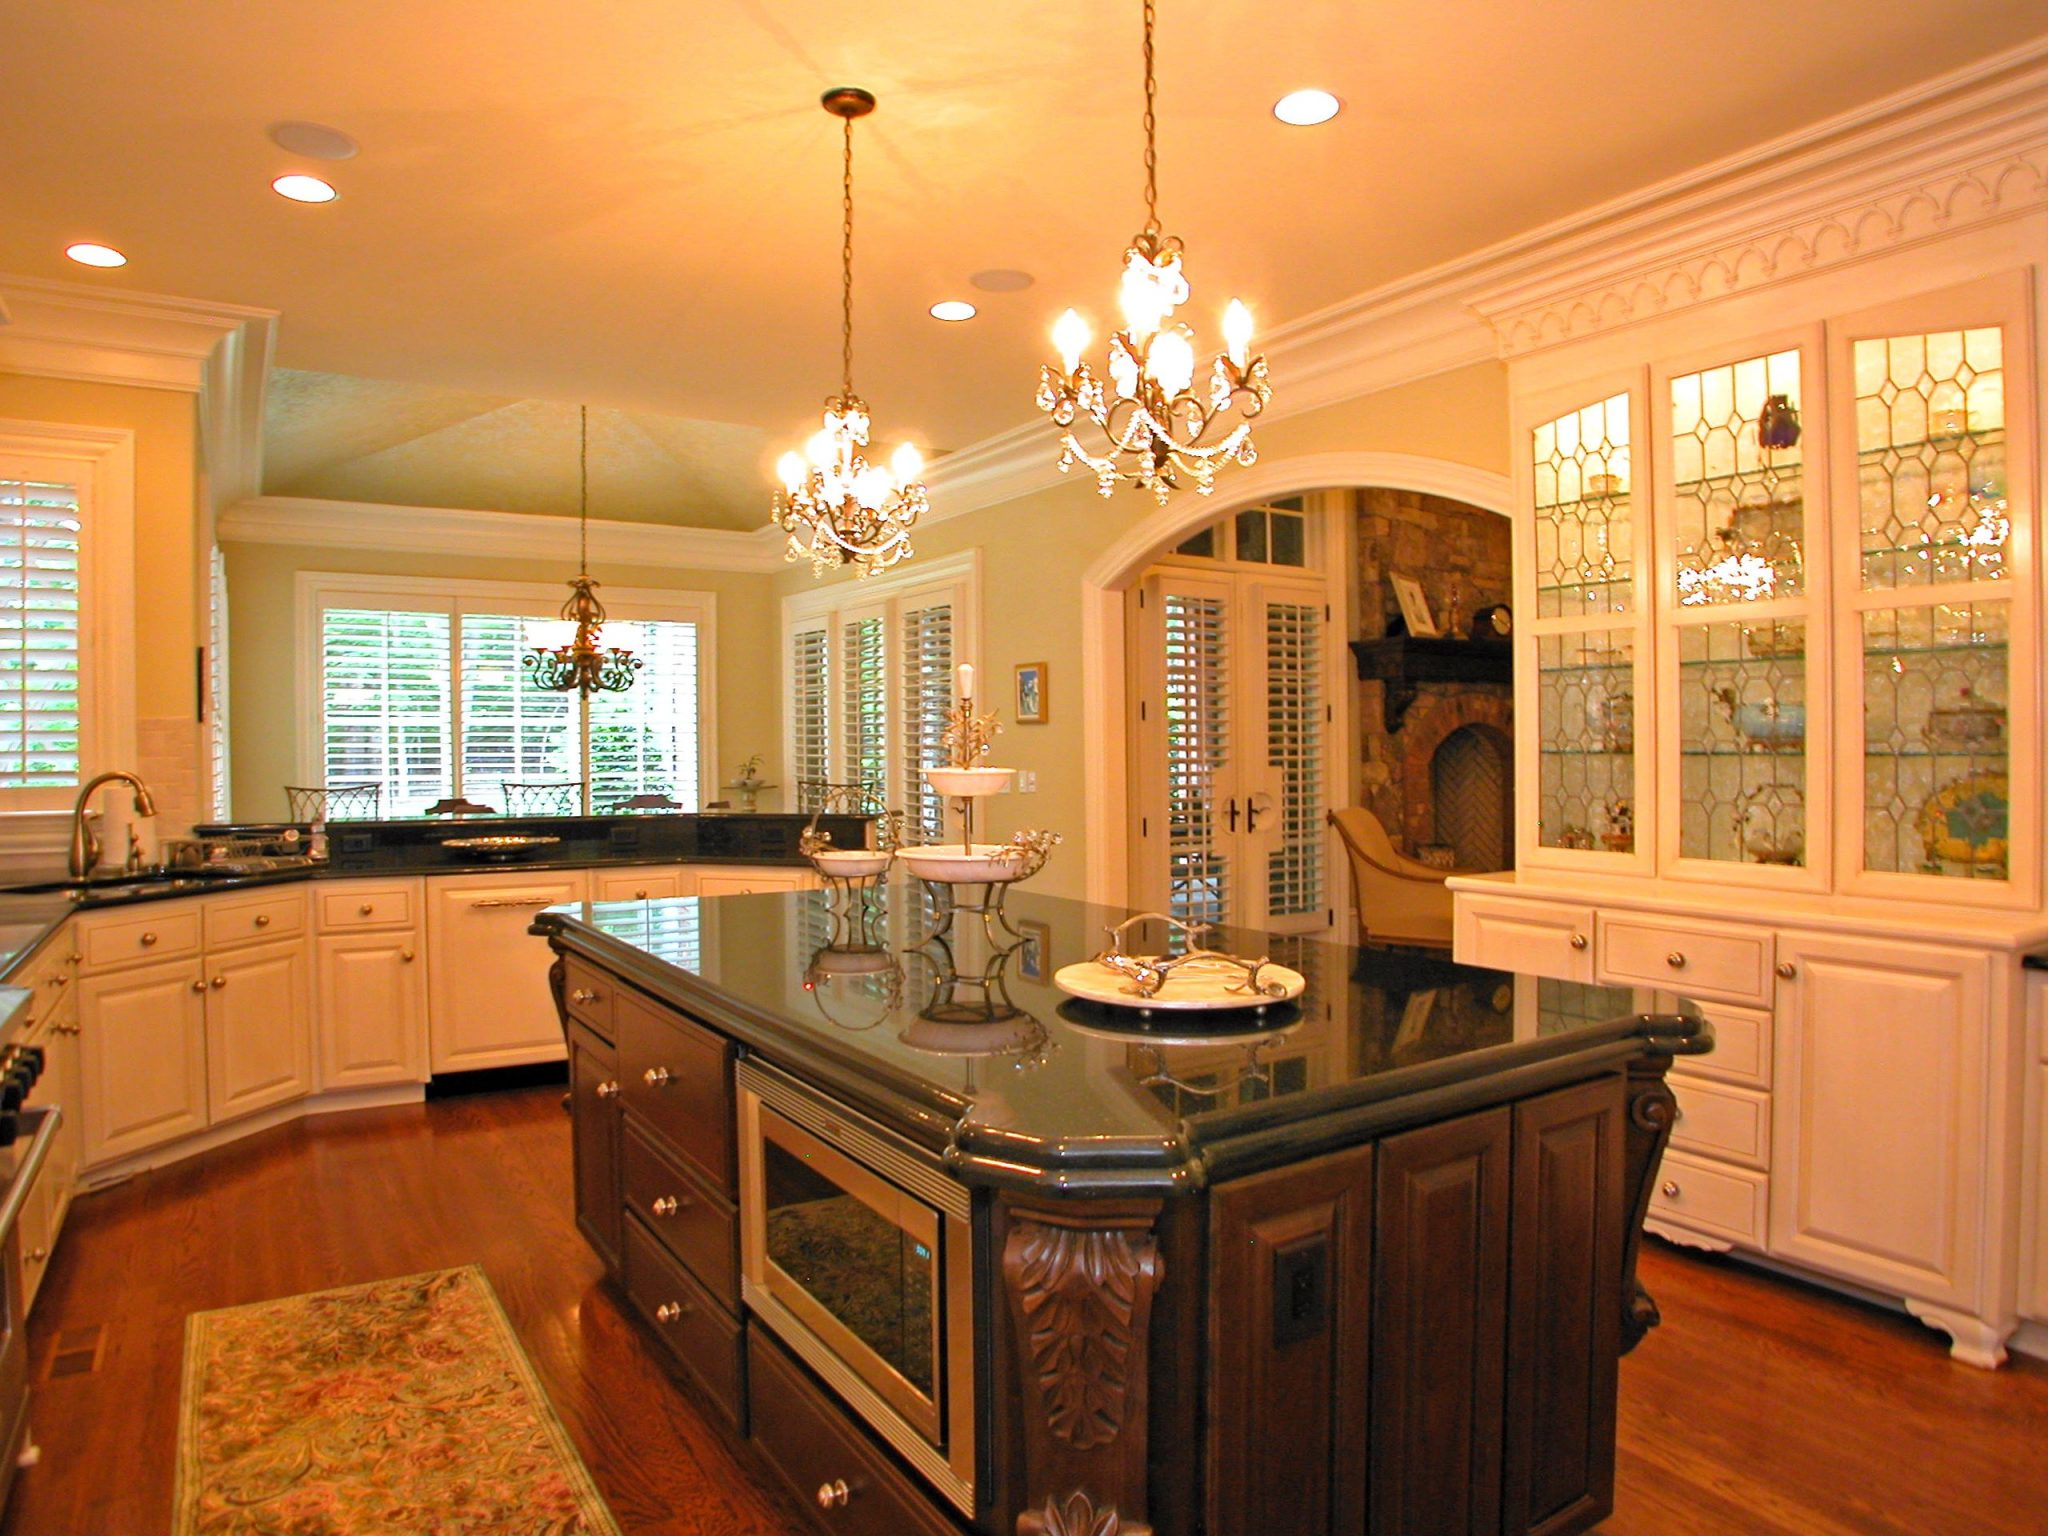 Kitchen – Holevas & Holton on brick front designs, gourmet cooking supplies, deck designs, patio designs, gourmet food, living room designs, laundry room designs, pantry designs, bathroom designs, large master bath designs, bedroom designs, family room designs, great room designs, high ceilings designs, dining designs, shared bath designs, roman tub designs, gourmet custom kitchens, marble floor designs, walk-in closets designs,